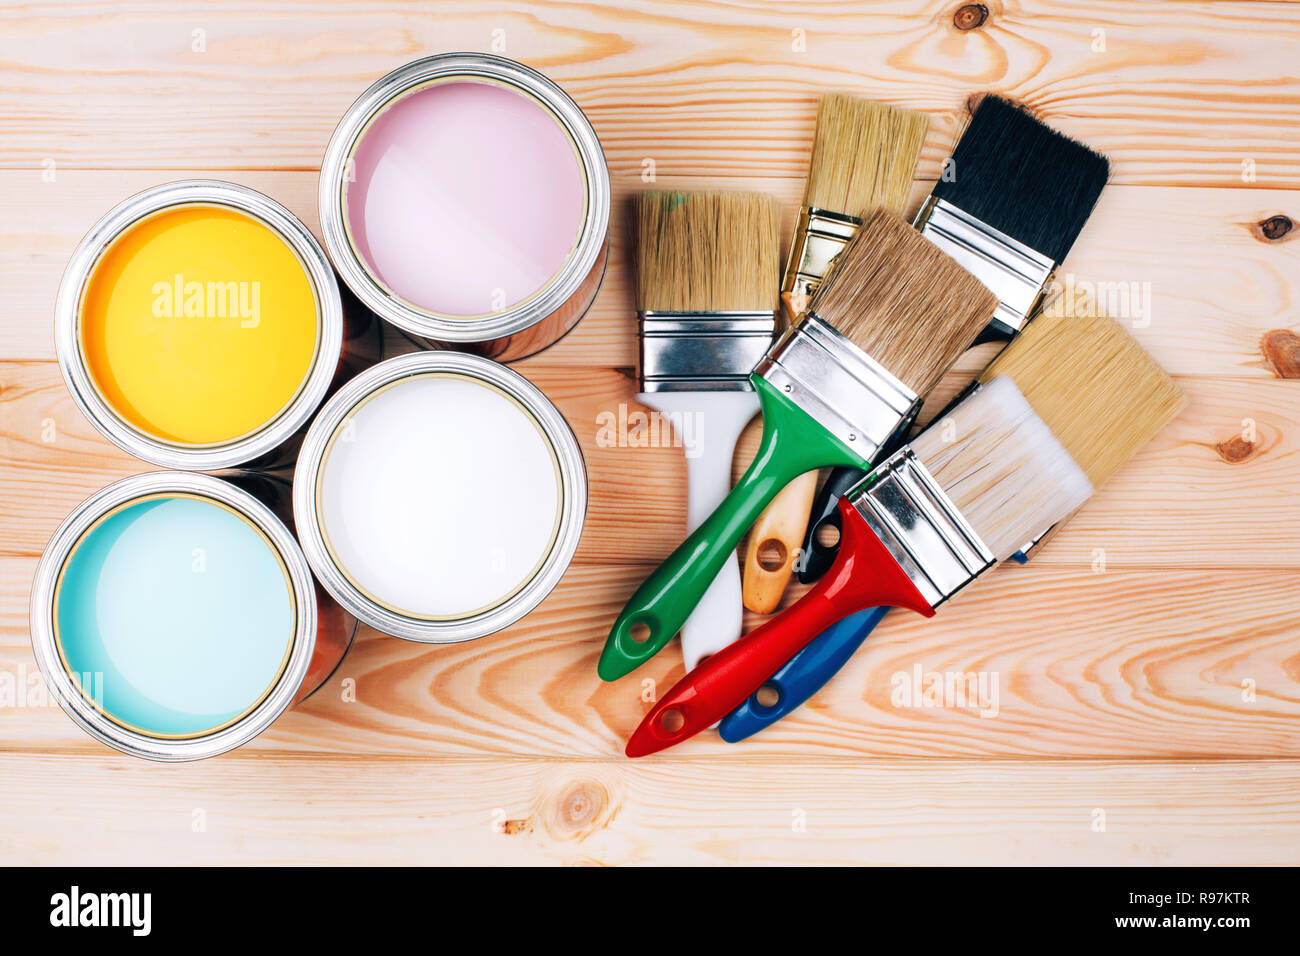 Four open cans of paint with brushes on natural wooden background. Yellow, white, pink, turquoise colors. Renovation concept. Stock Photo